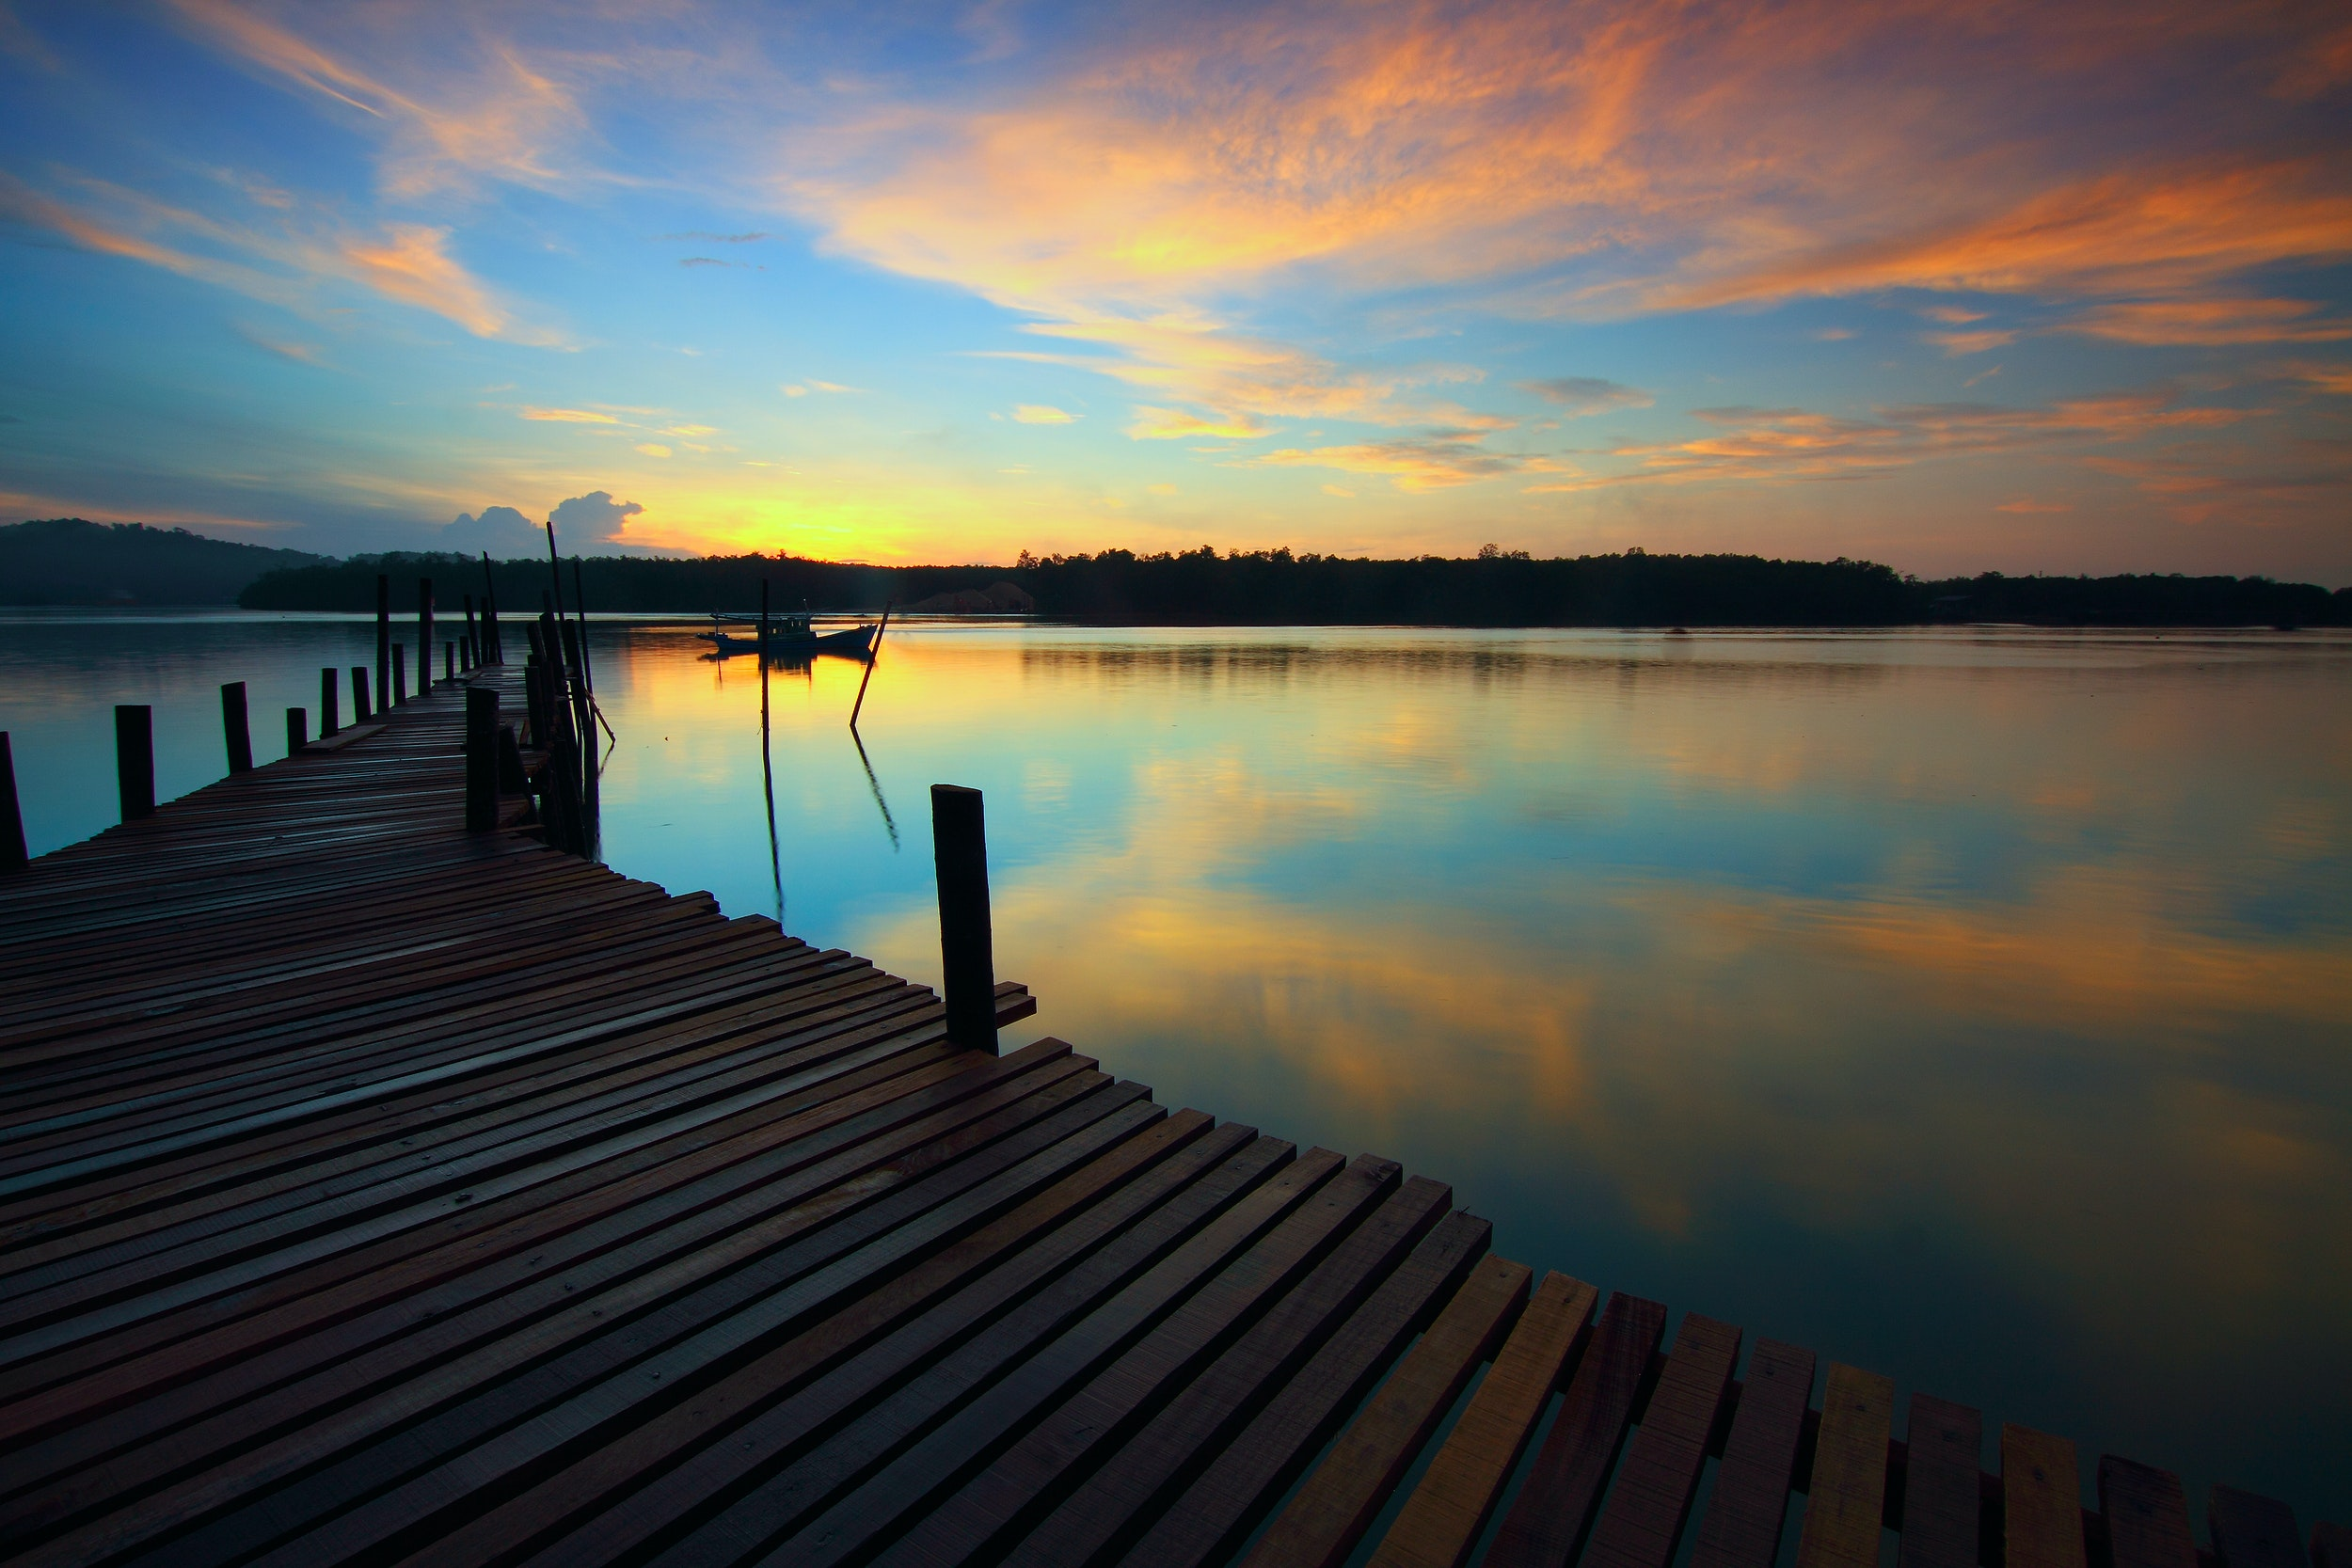 pier over sea against sky during sunset  u00b7 free stock photo